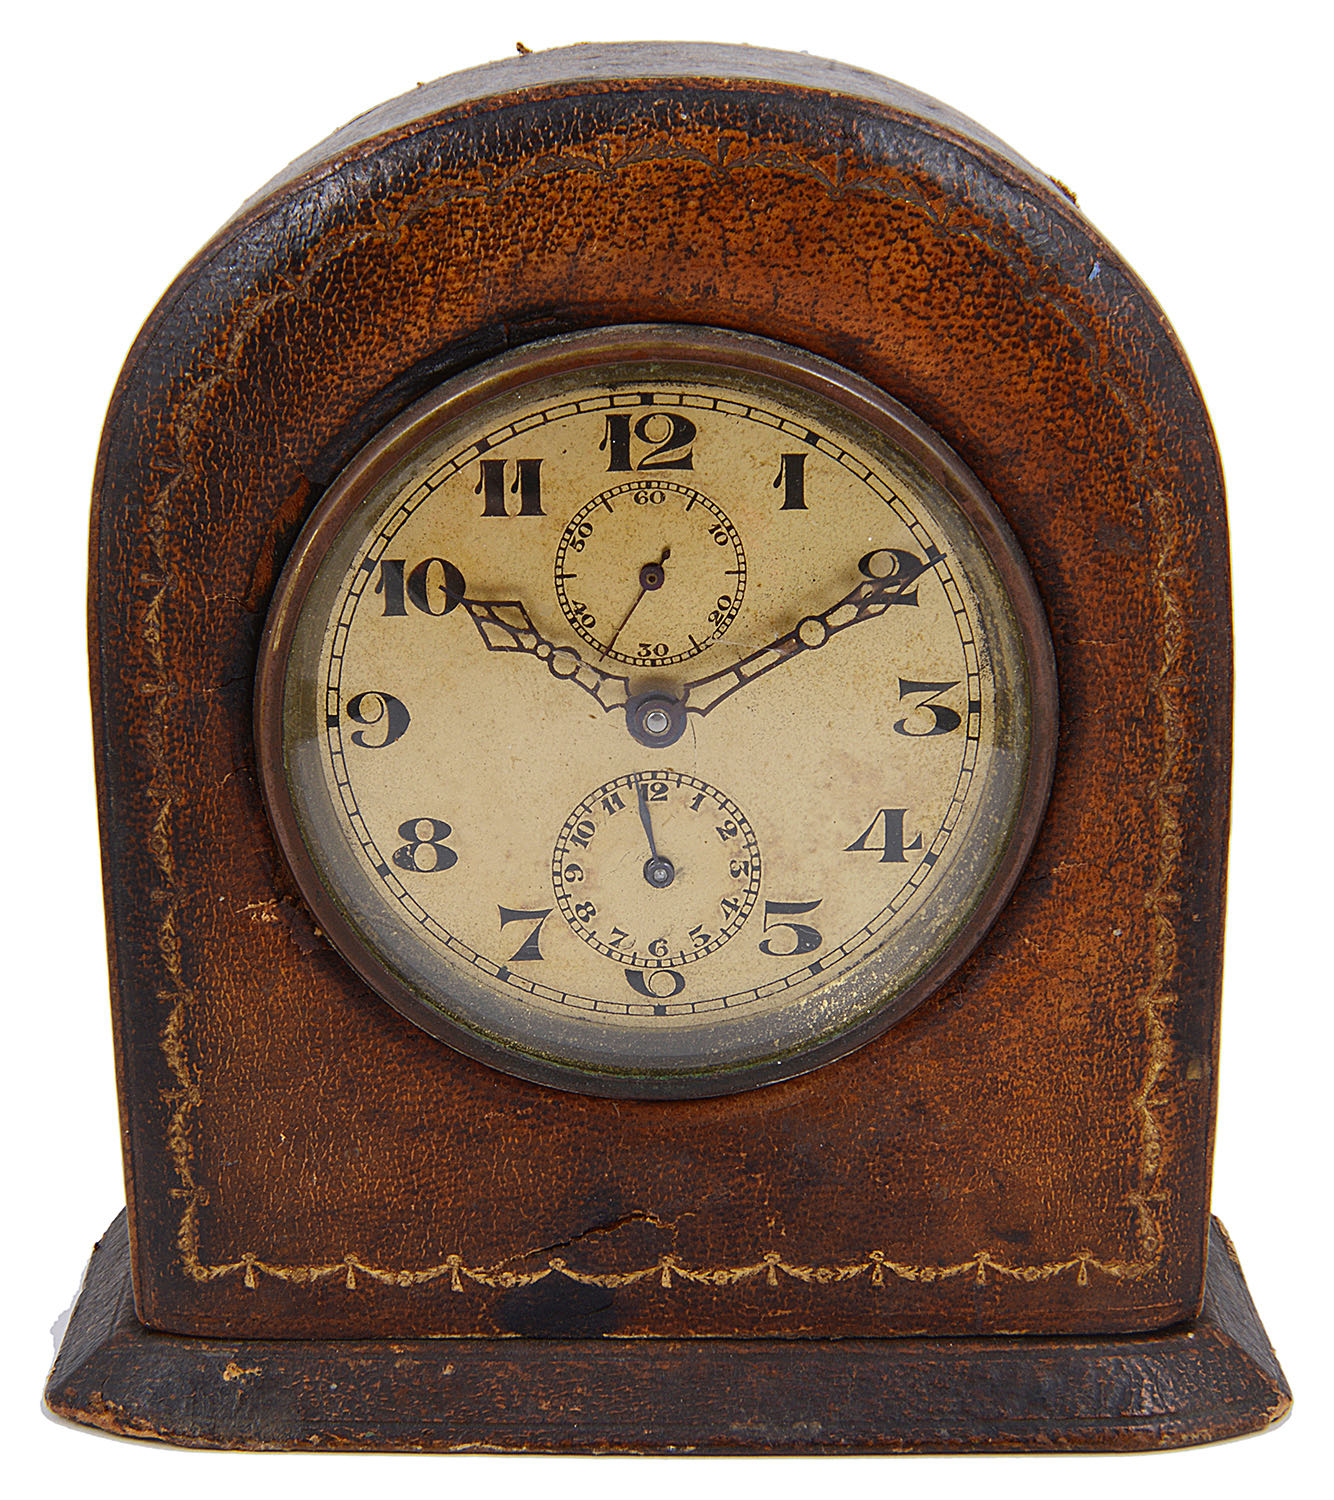 Lot 32 - An early 20th century gilt tooled leather arched desk clock